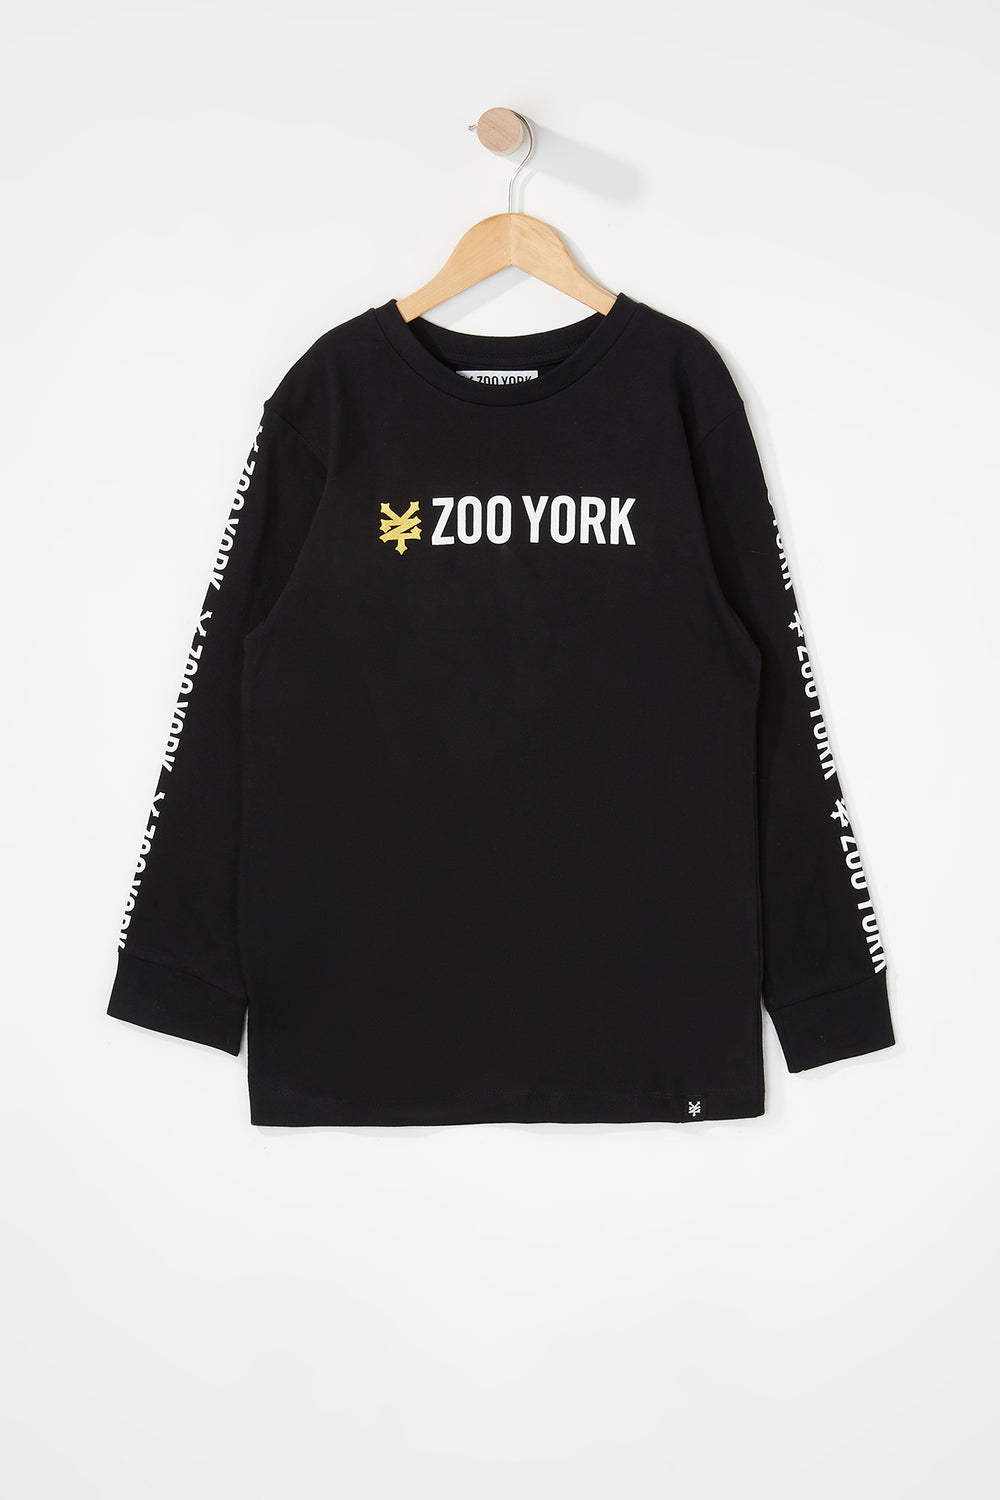 Zoo York Boys Classic Logo Long Sleeve Shirt Black